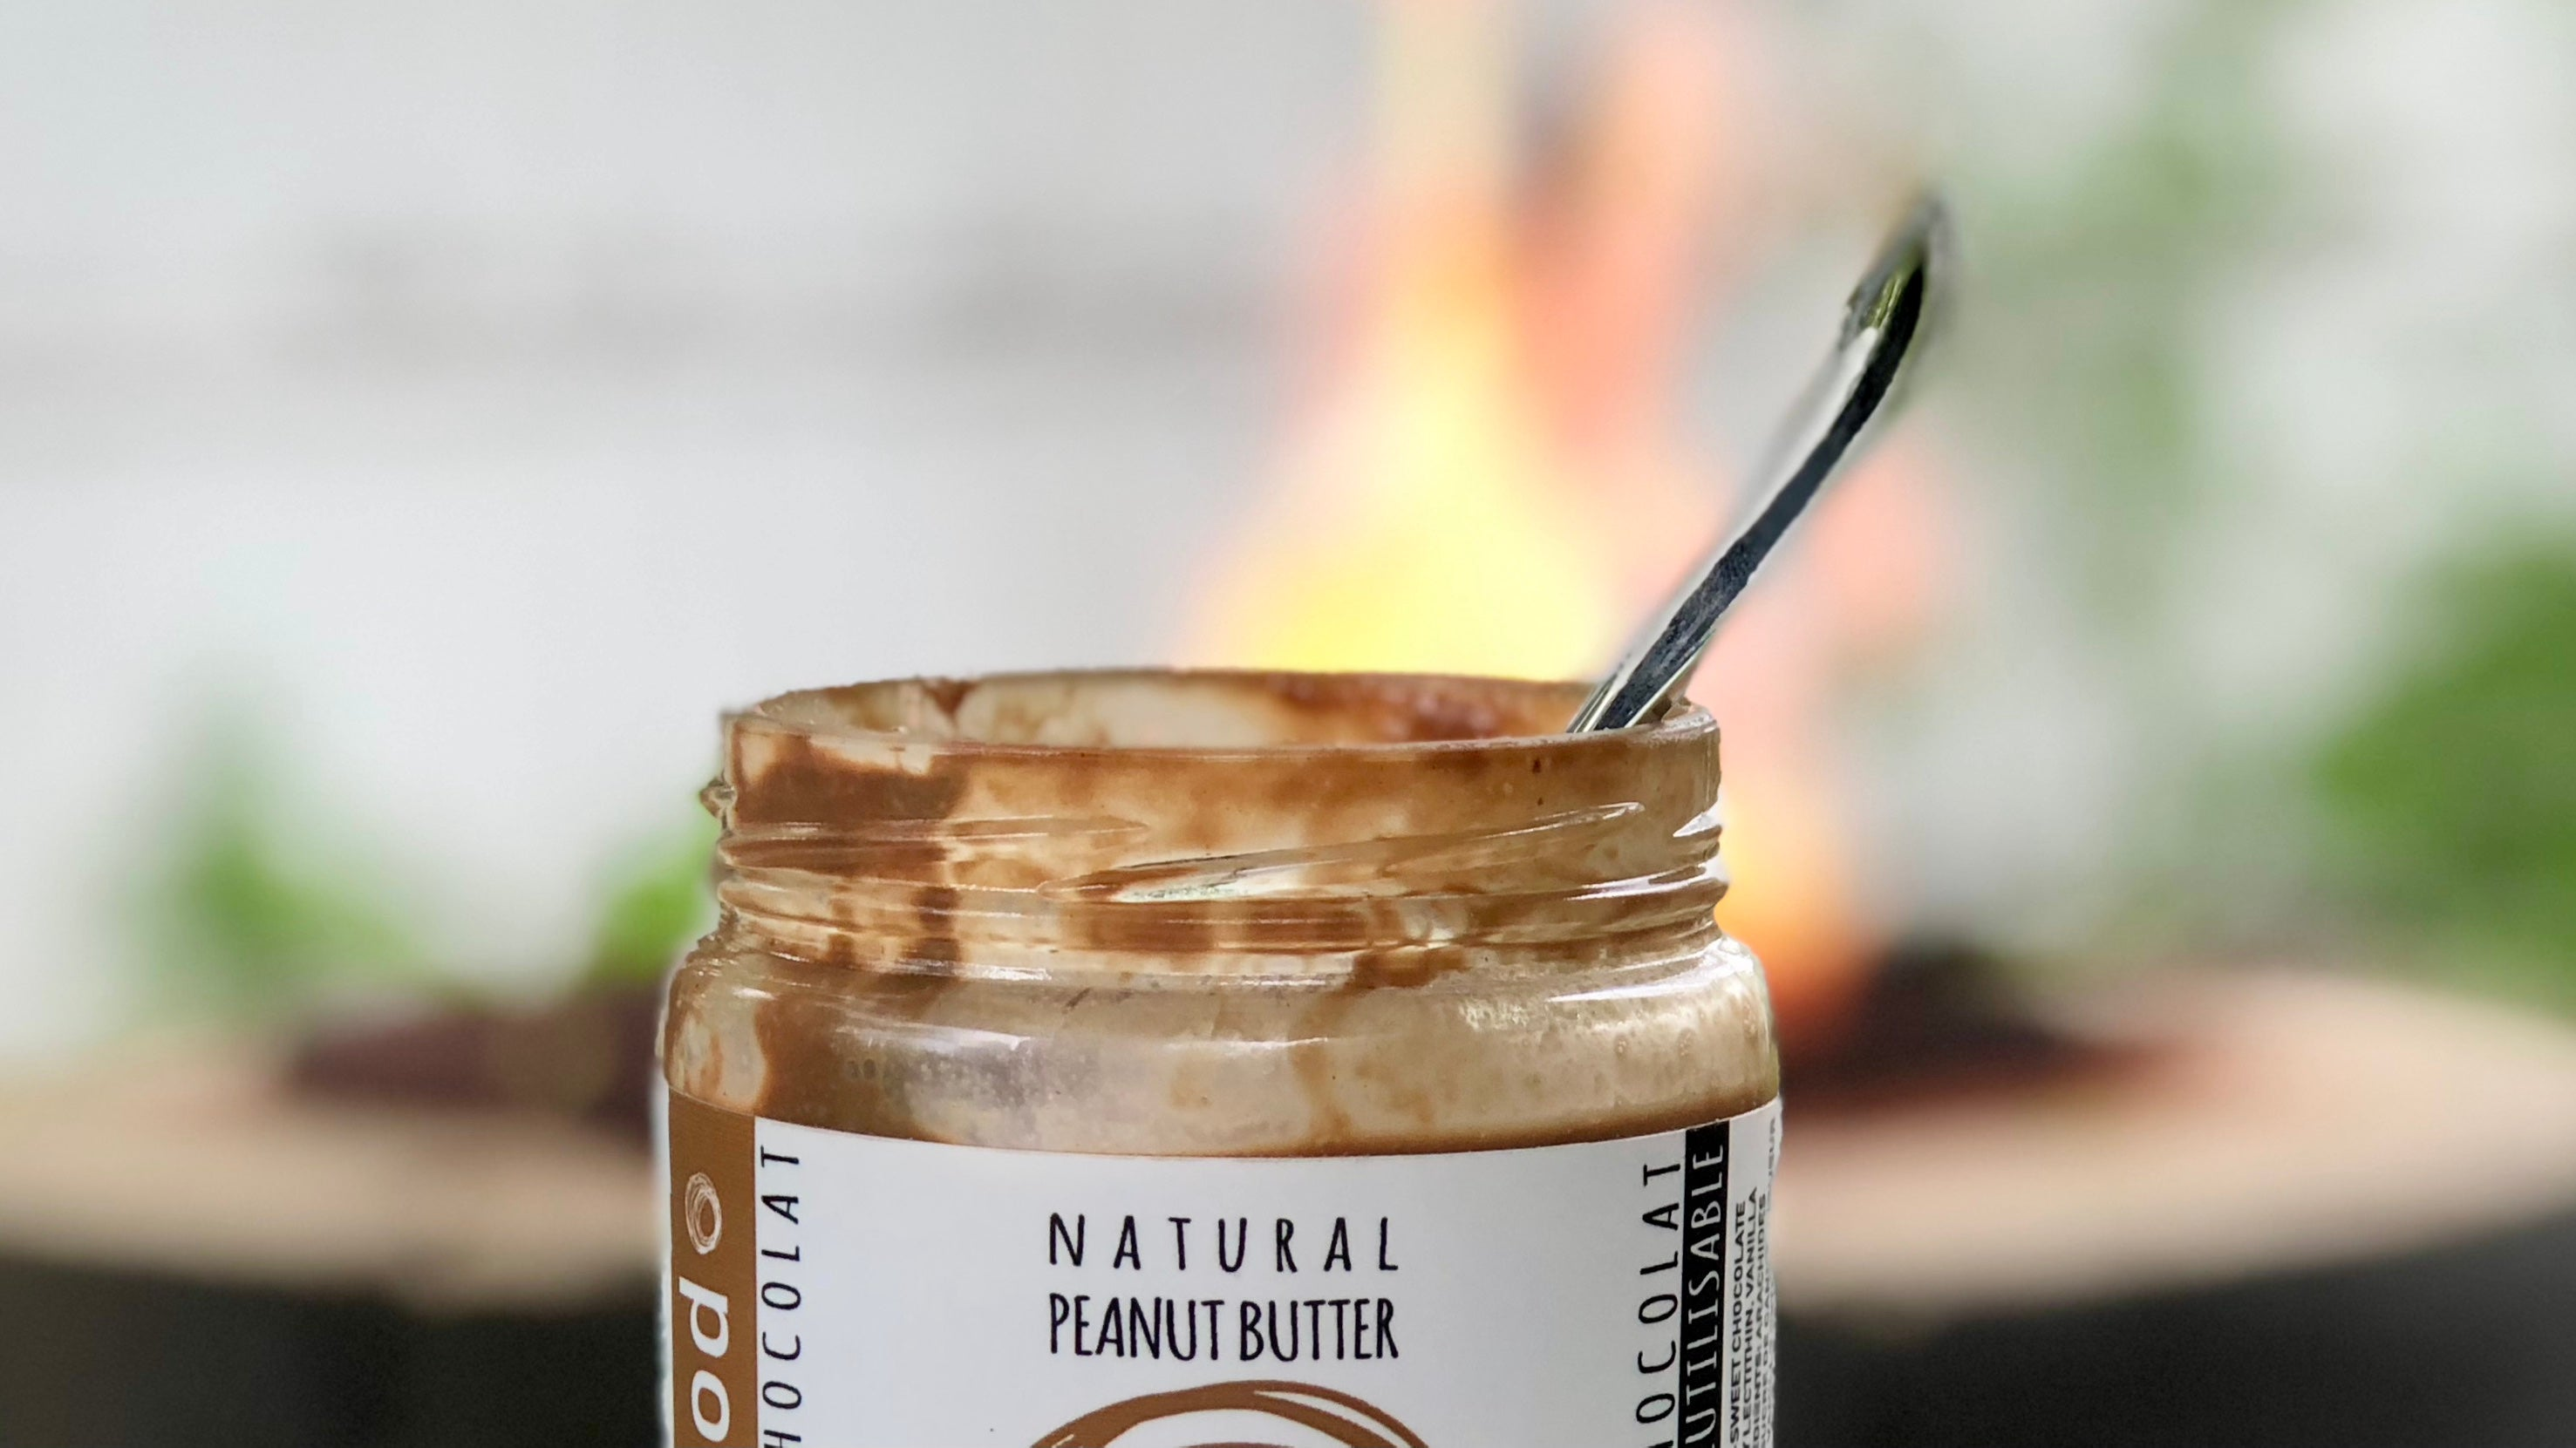 Chocolate Peanut Butter in Front of Campfire